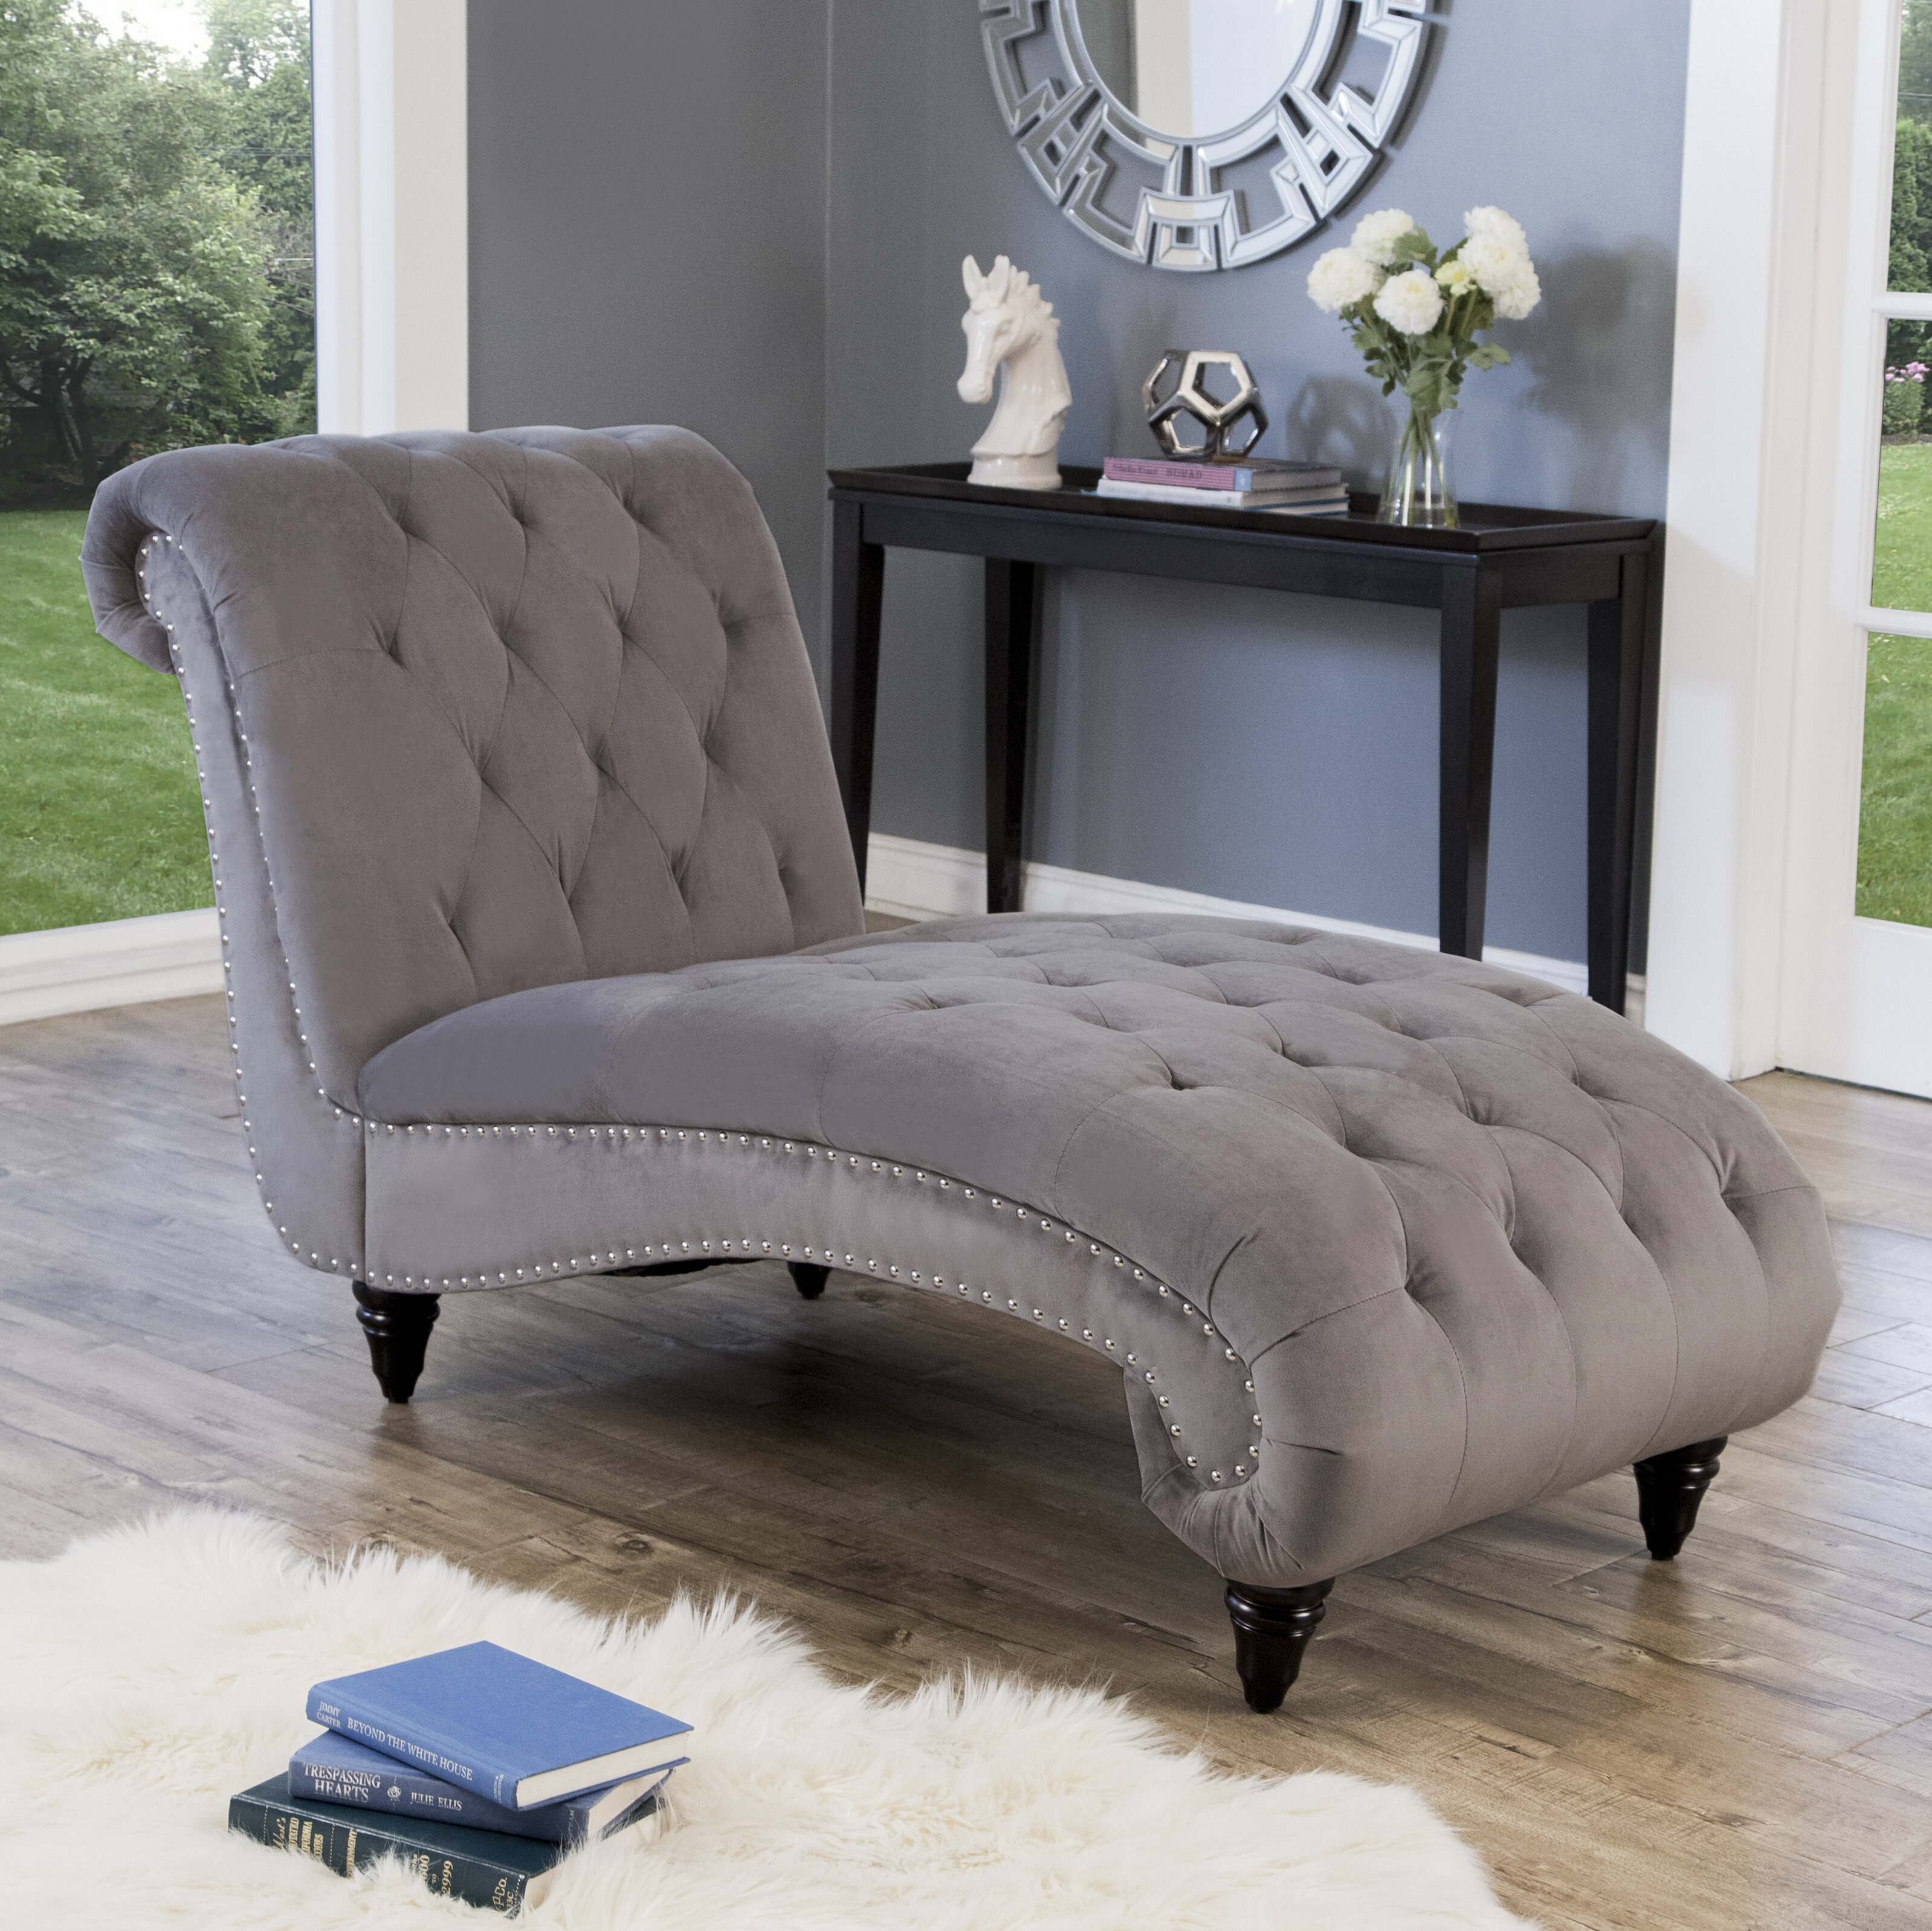 Darby Home Co Lowell Chaise Lounge Reviews Wayfair